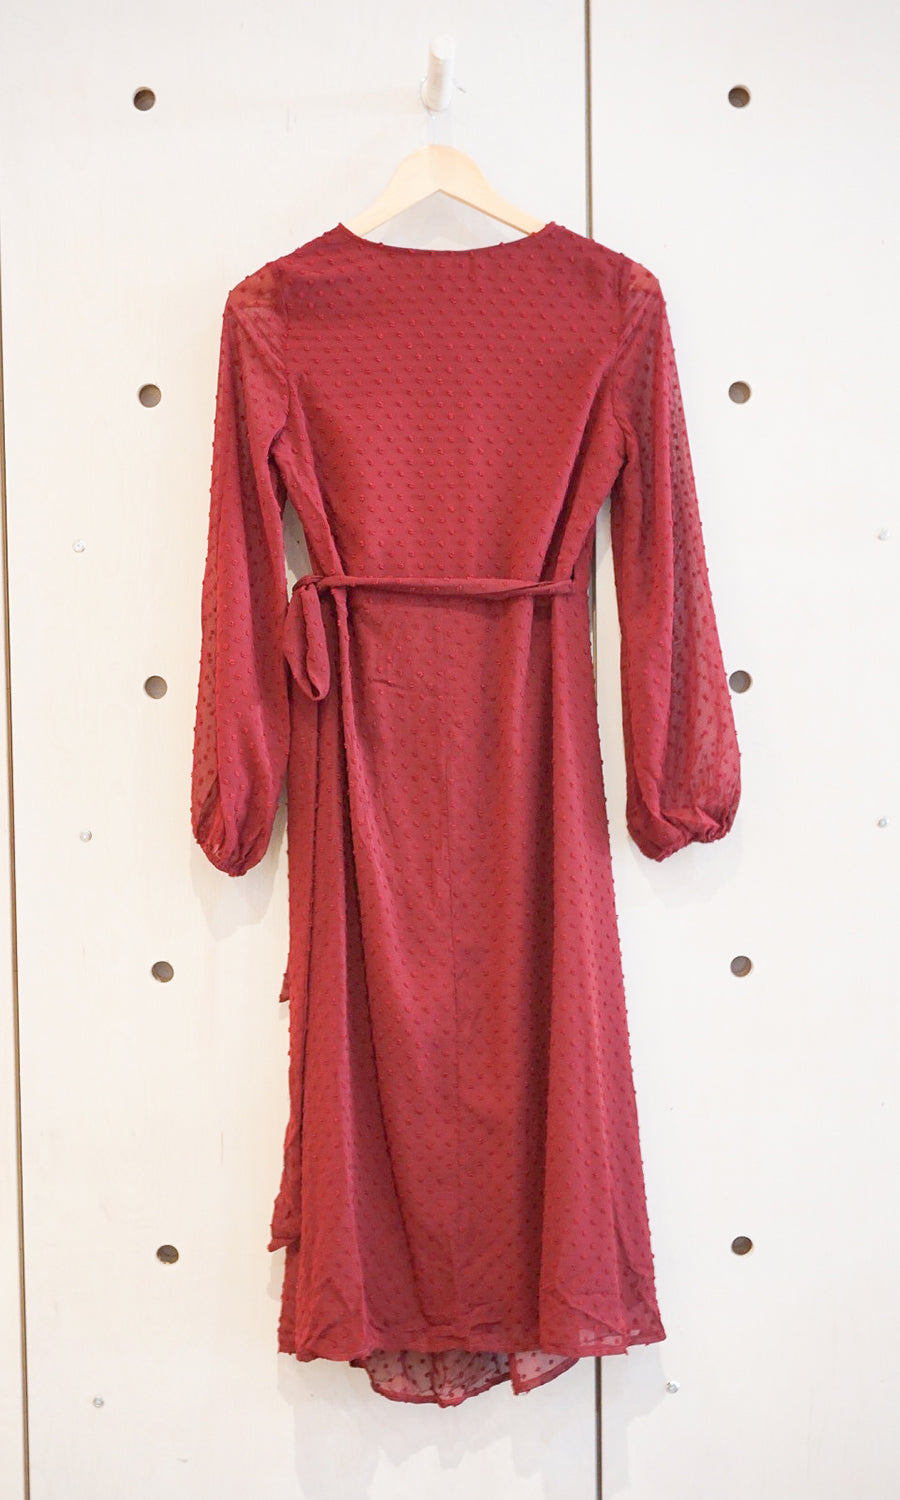 Cove Wrap Dress